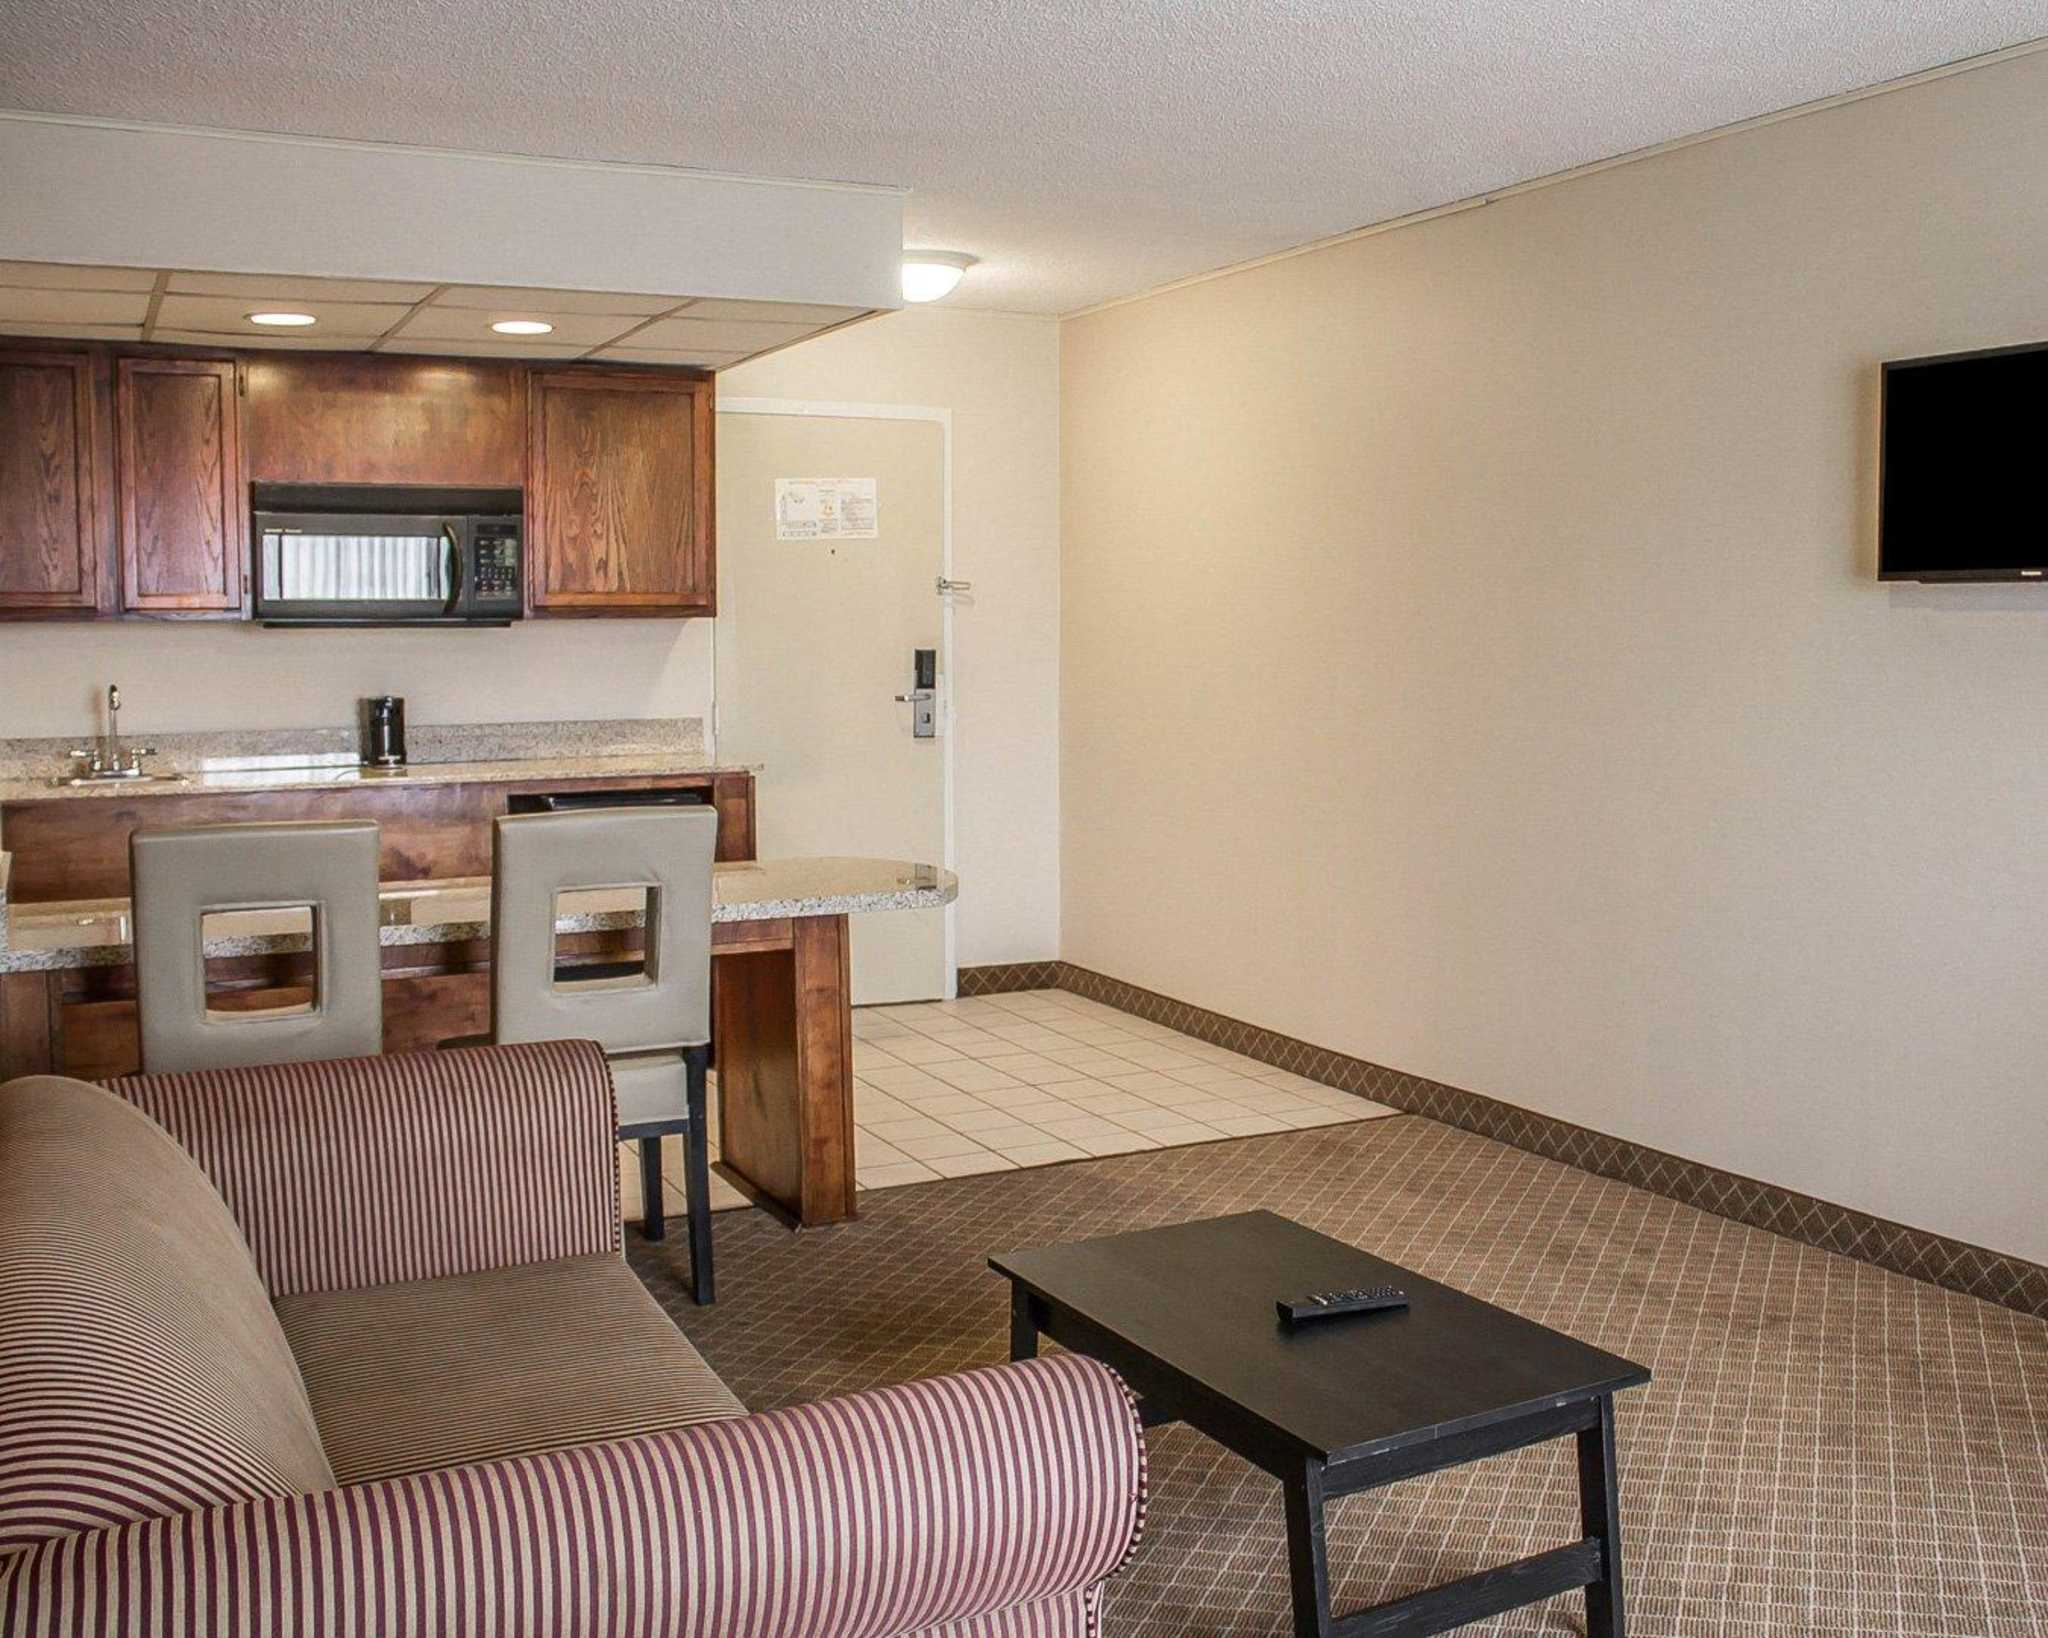 Comfort Inn North Conference Center image 41